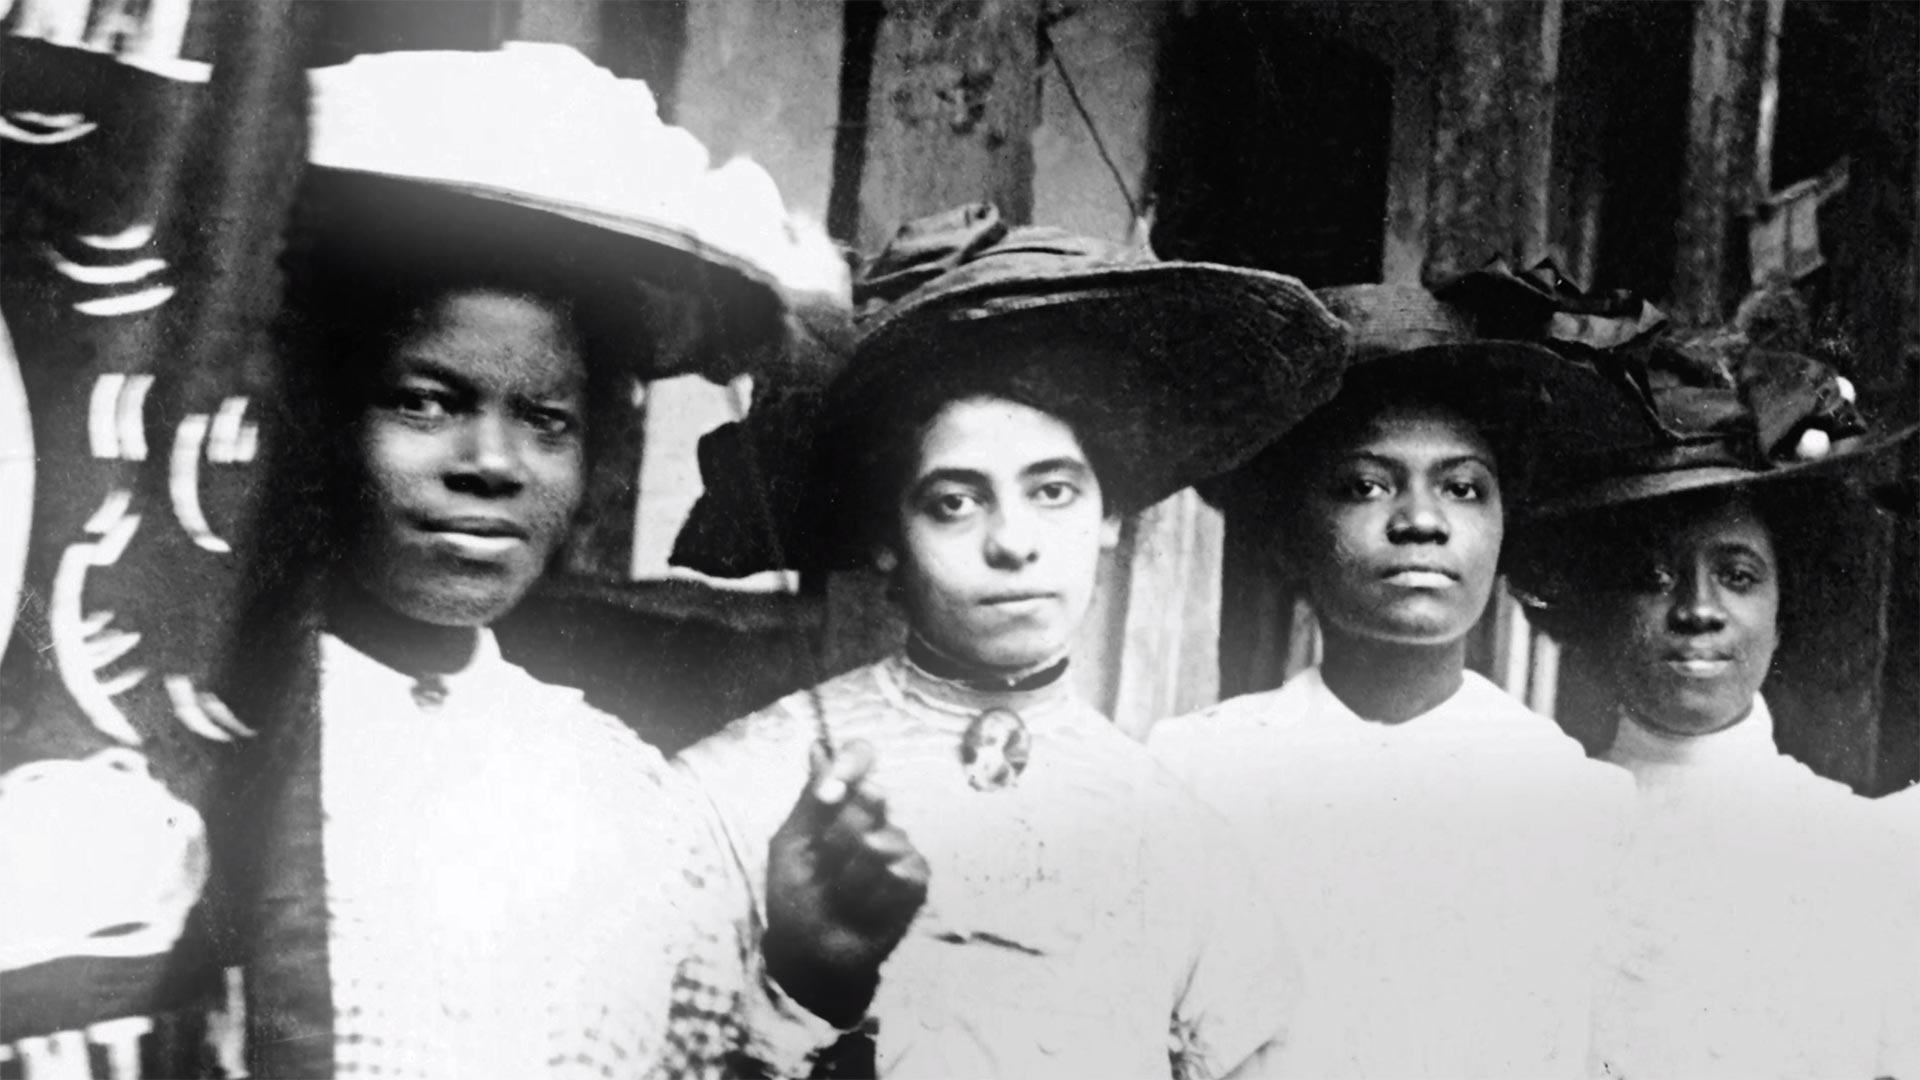 Four women in hats stand side by side